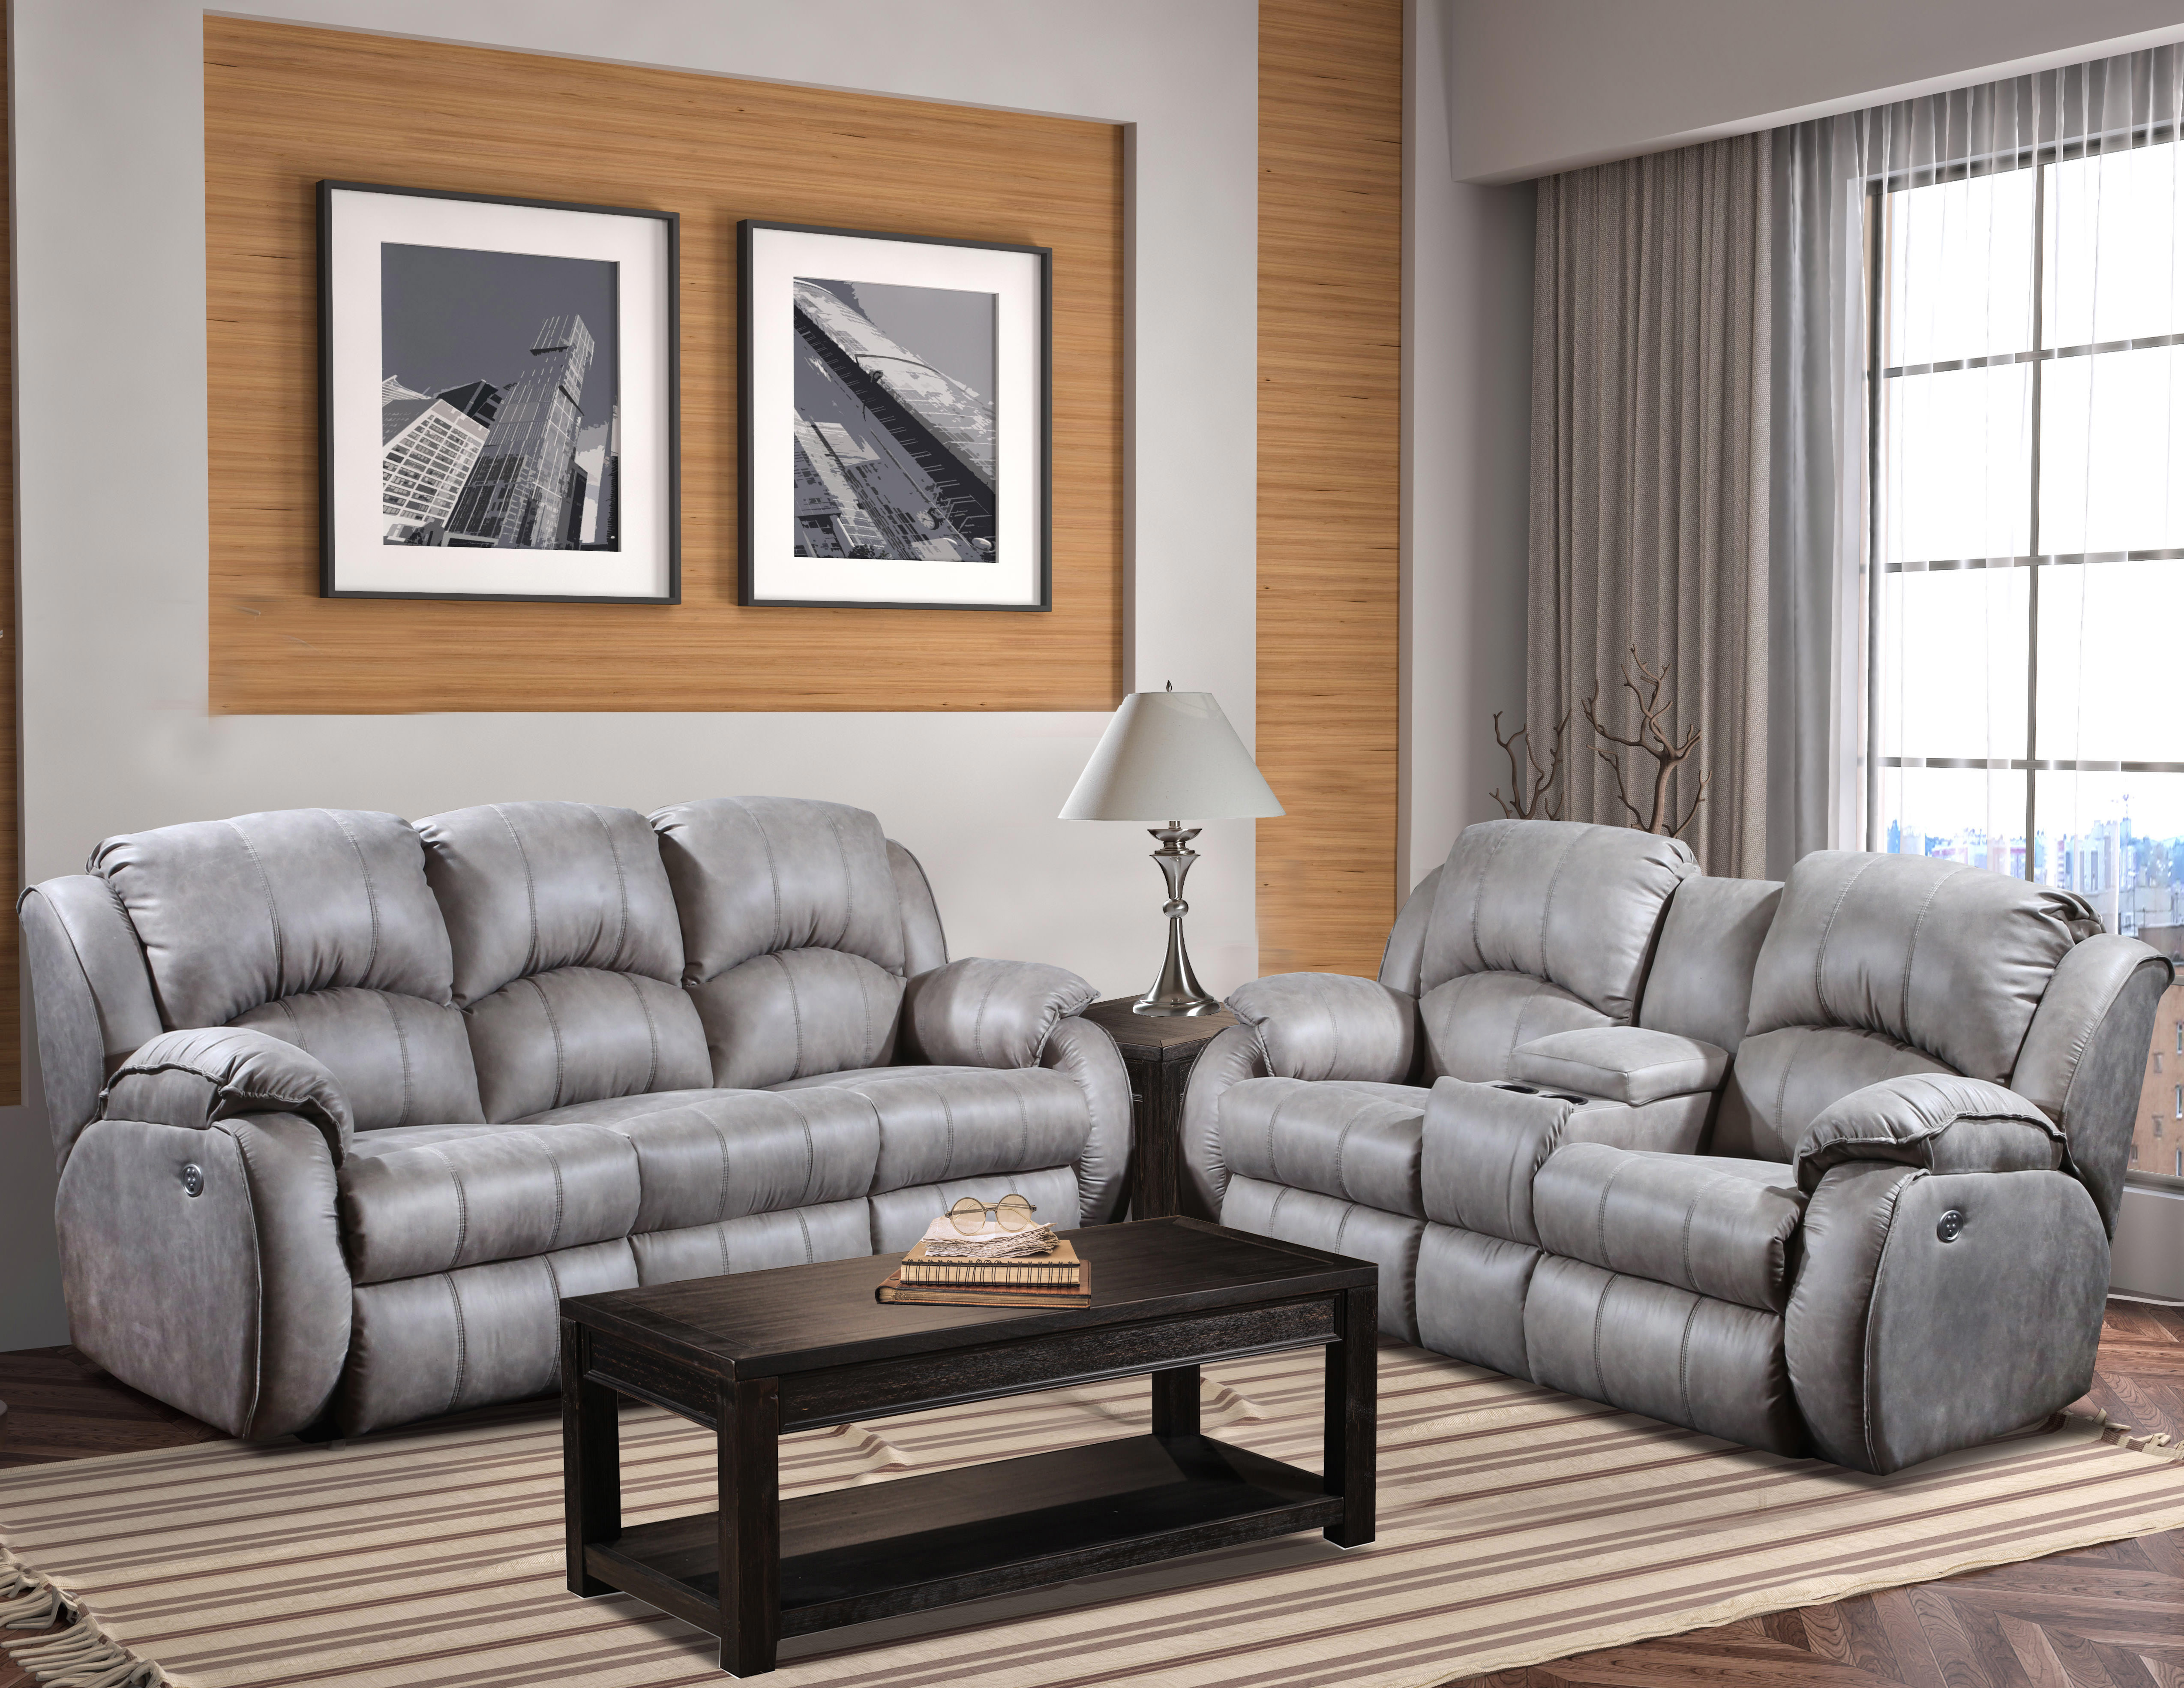 Fabulous Cagney Power Headrest Reclining Sofa Collection Sofas And Download Free Architecture Designs Scobabritishbridgeorg